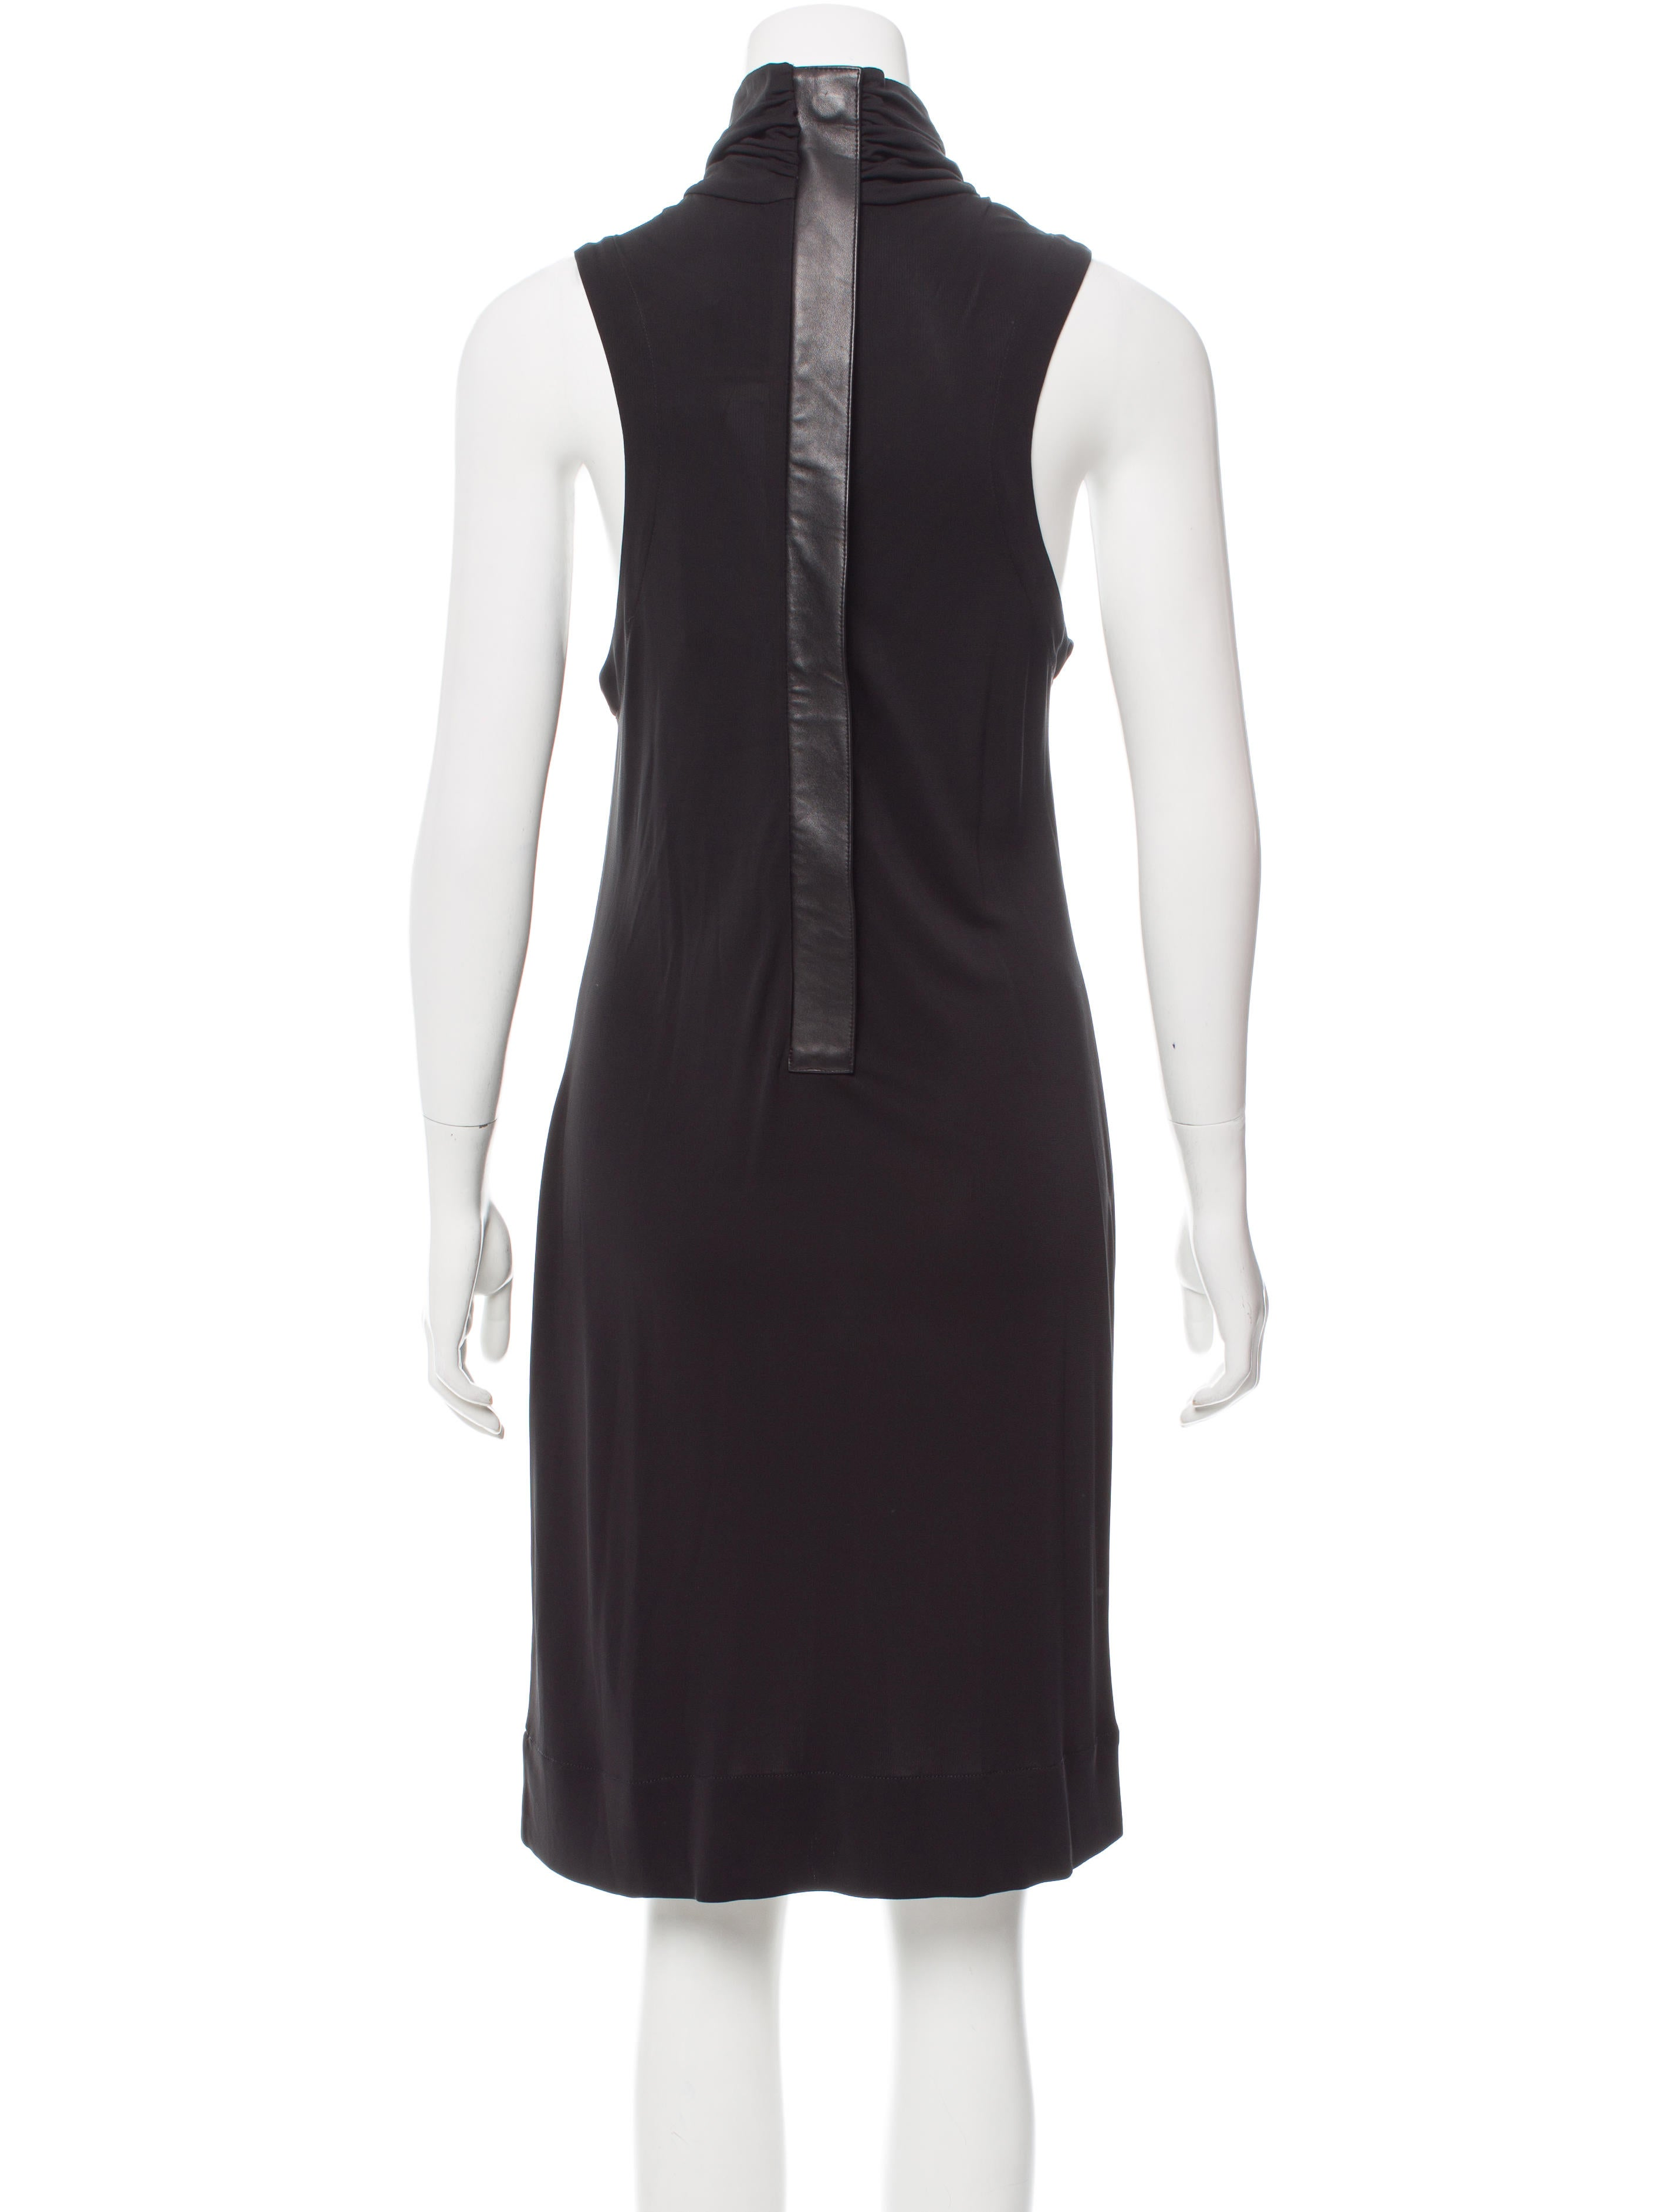 c3cd4ad02ca36 Hanley Mellon Sleeveless Turtleneck Dress w  Tags - Clothing ...